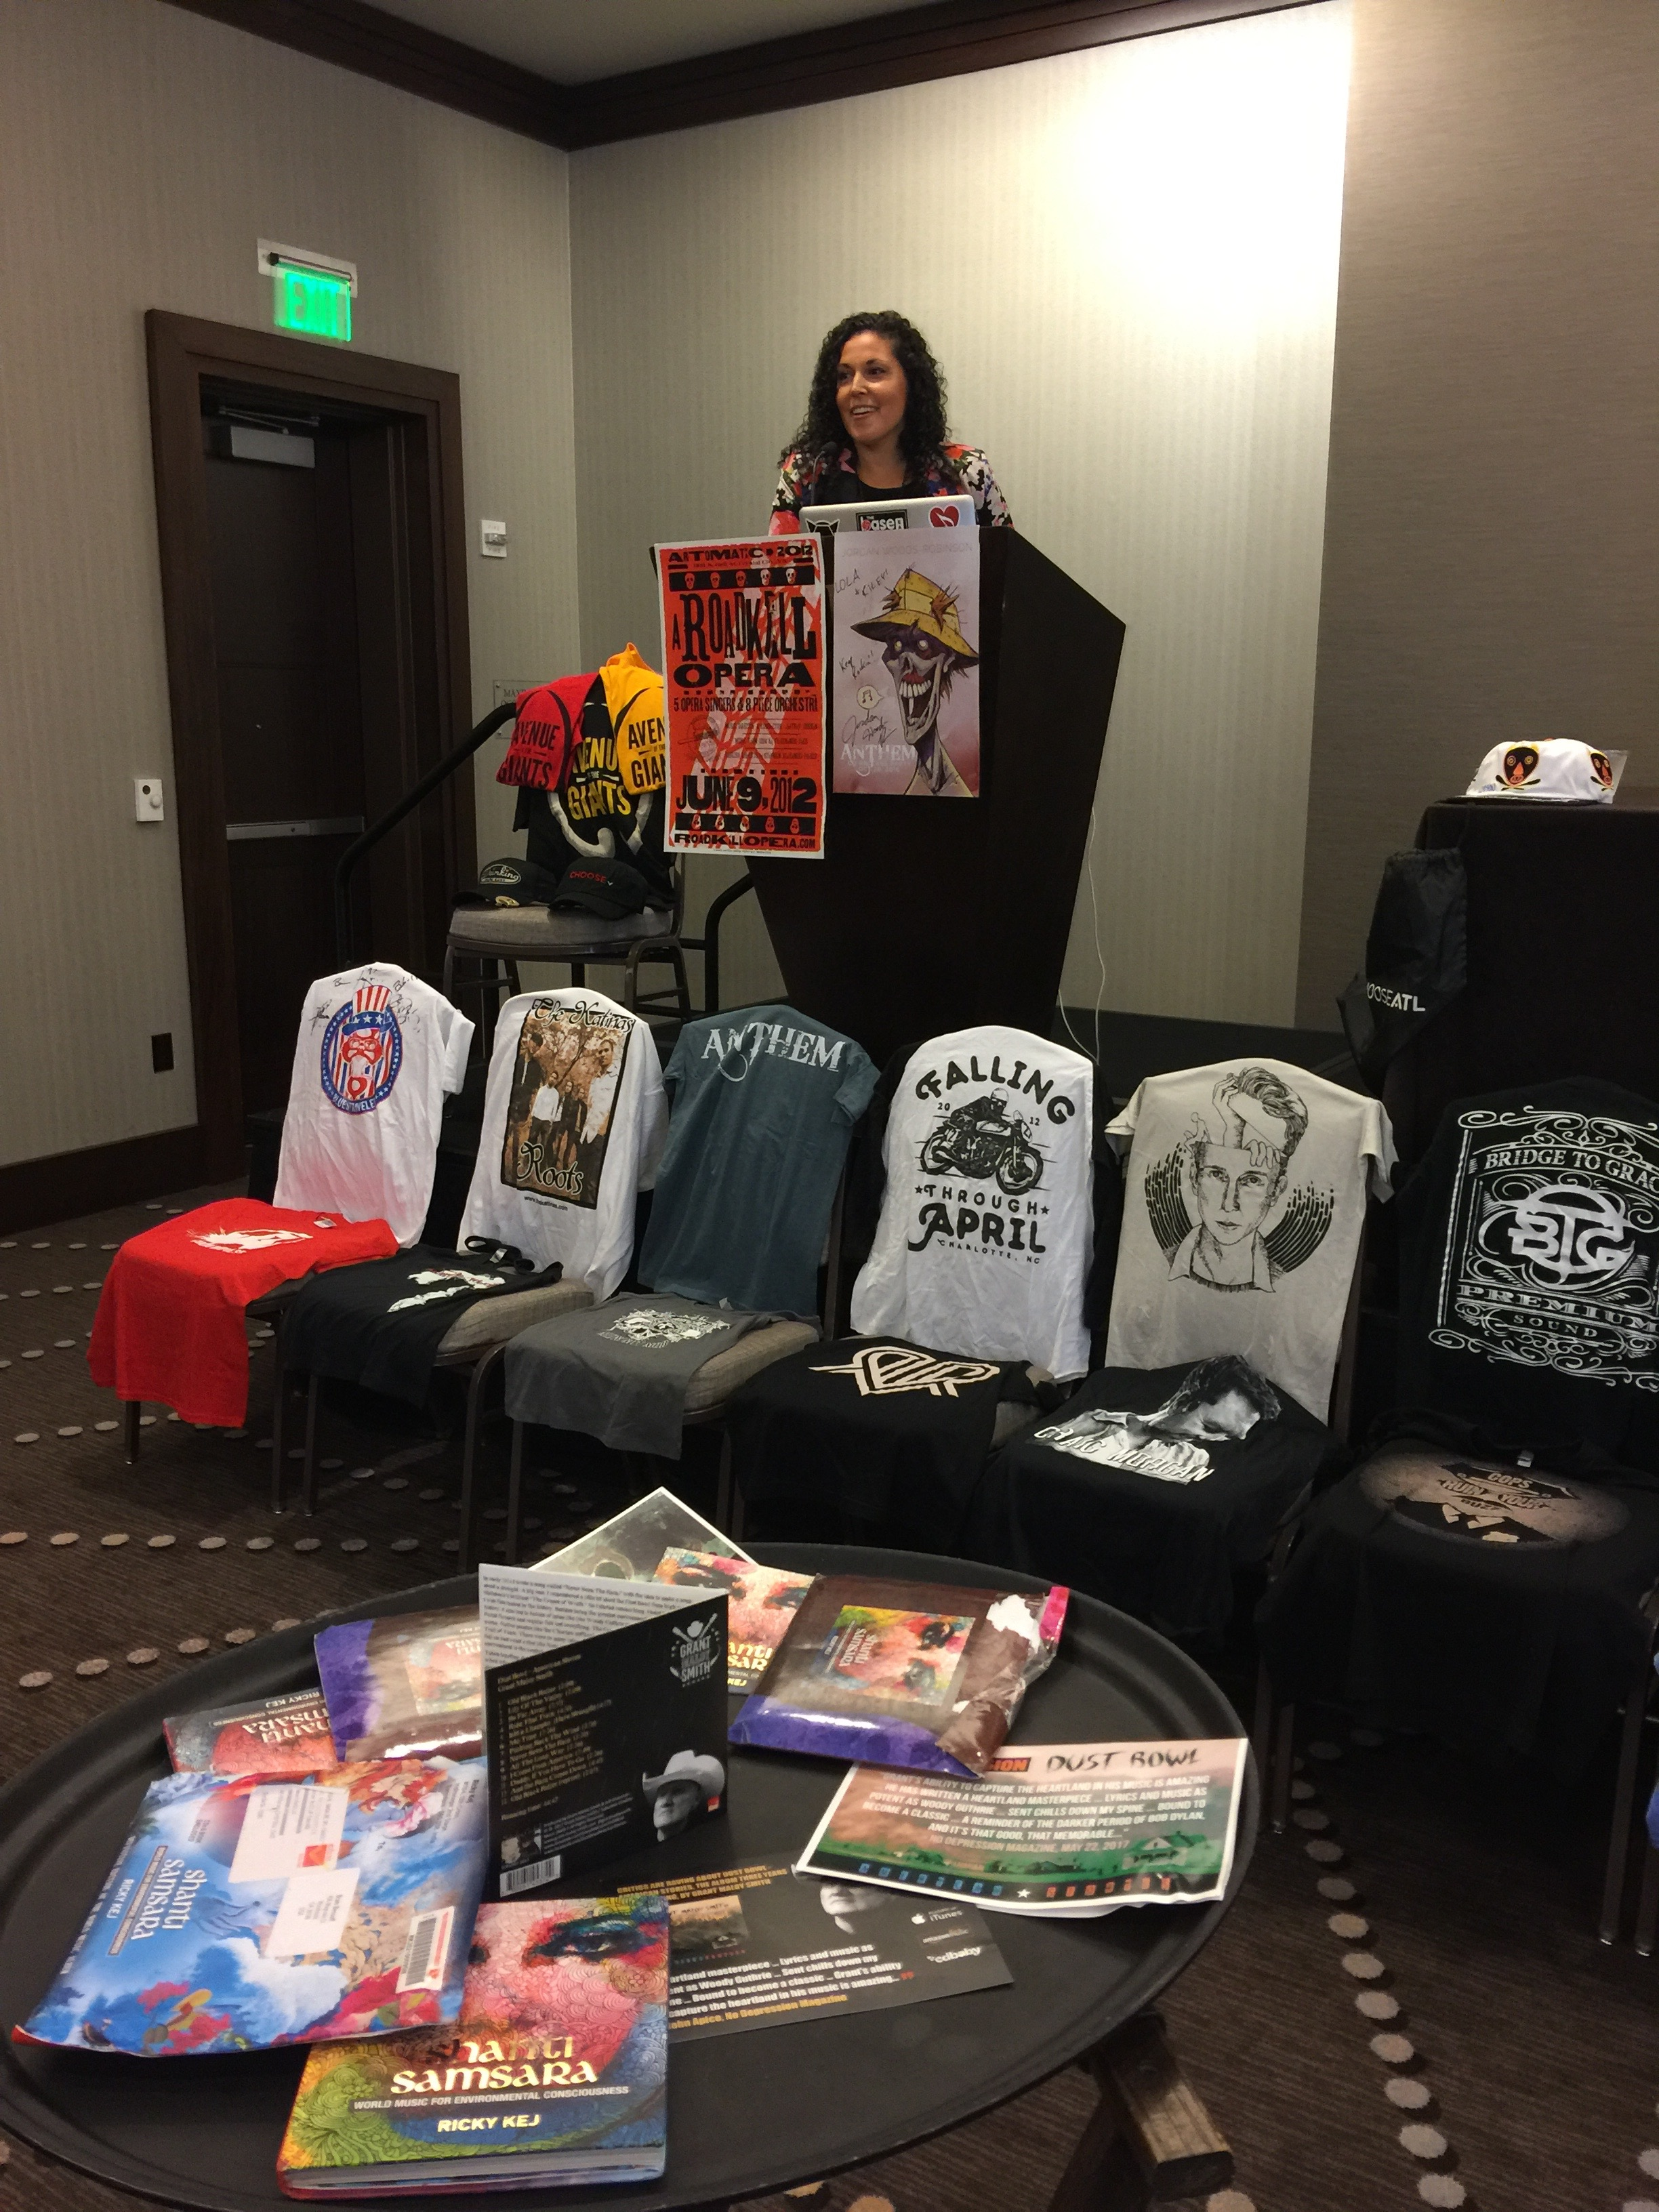 Photo of Vanessa Ferrer at the podium festooned with posters from a Walking Dead star and A Roadkill Opera. In front of the podium is a row of chairs with t-shirts and table vocoder with alternative swag, such as custom incense packaging from a reggae artist.